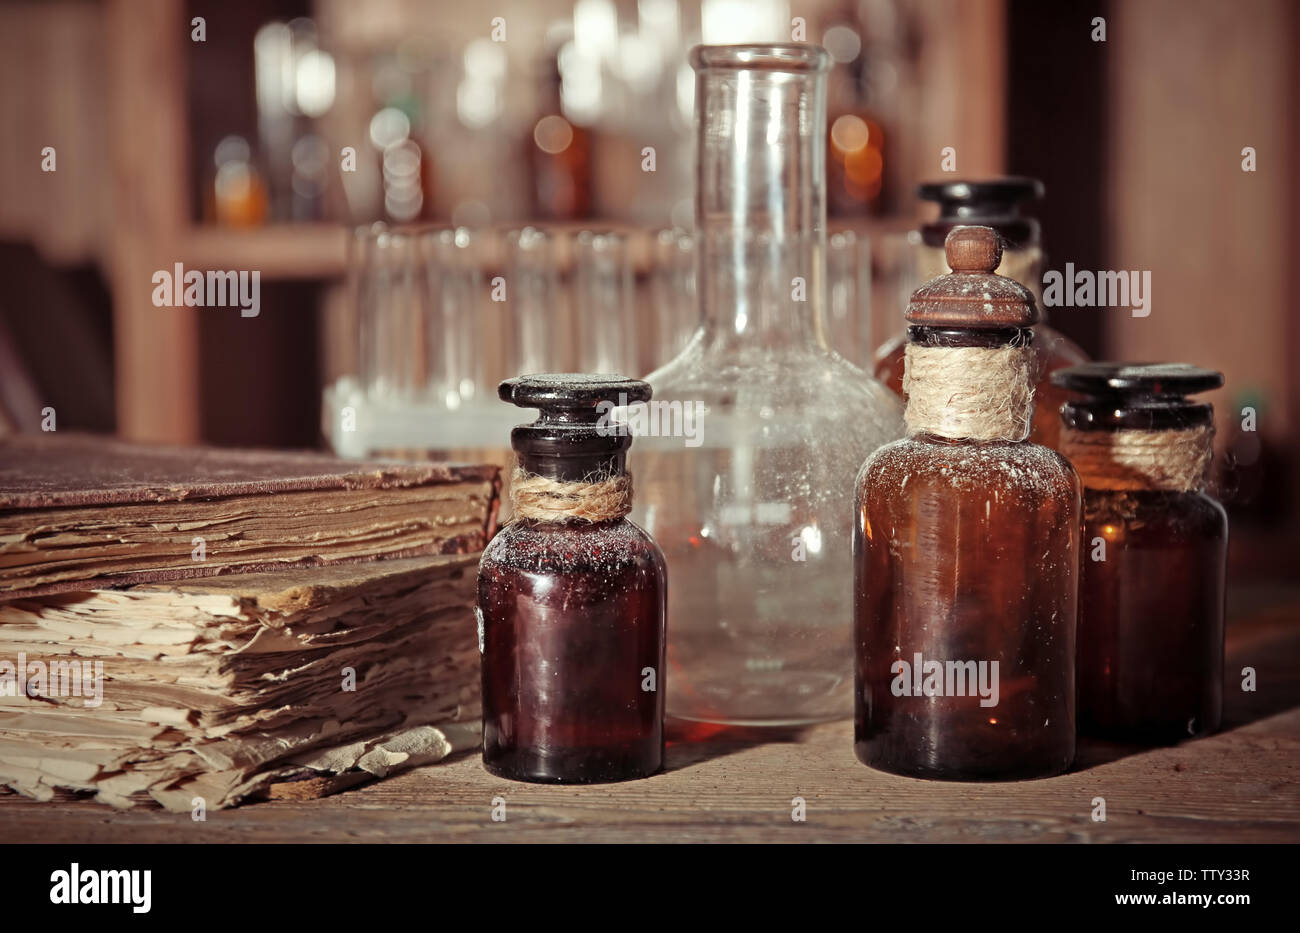 Vintage glass bottles on wooden table, closeup - Stock Image